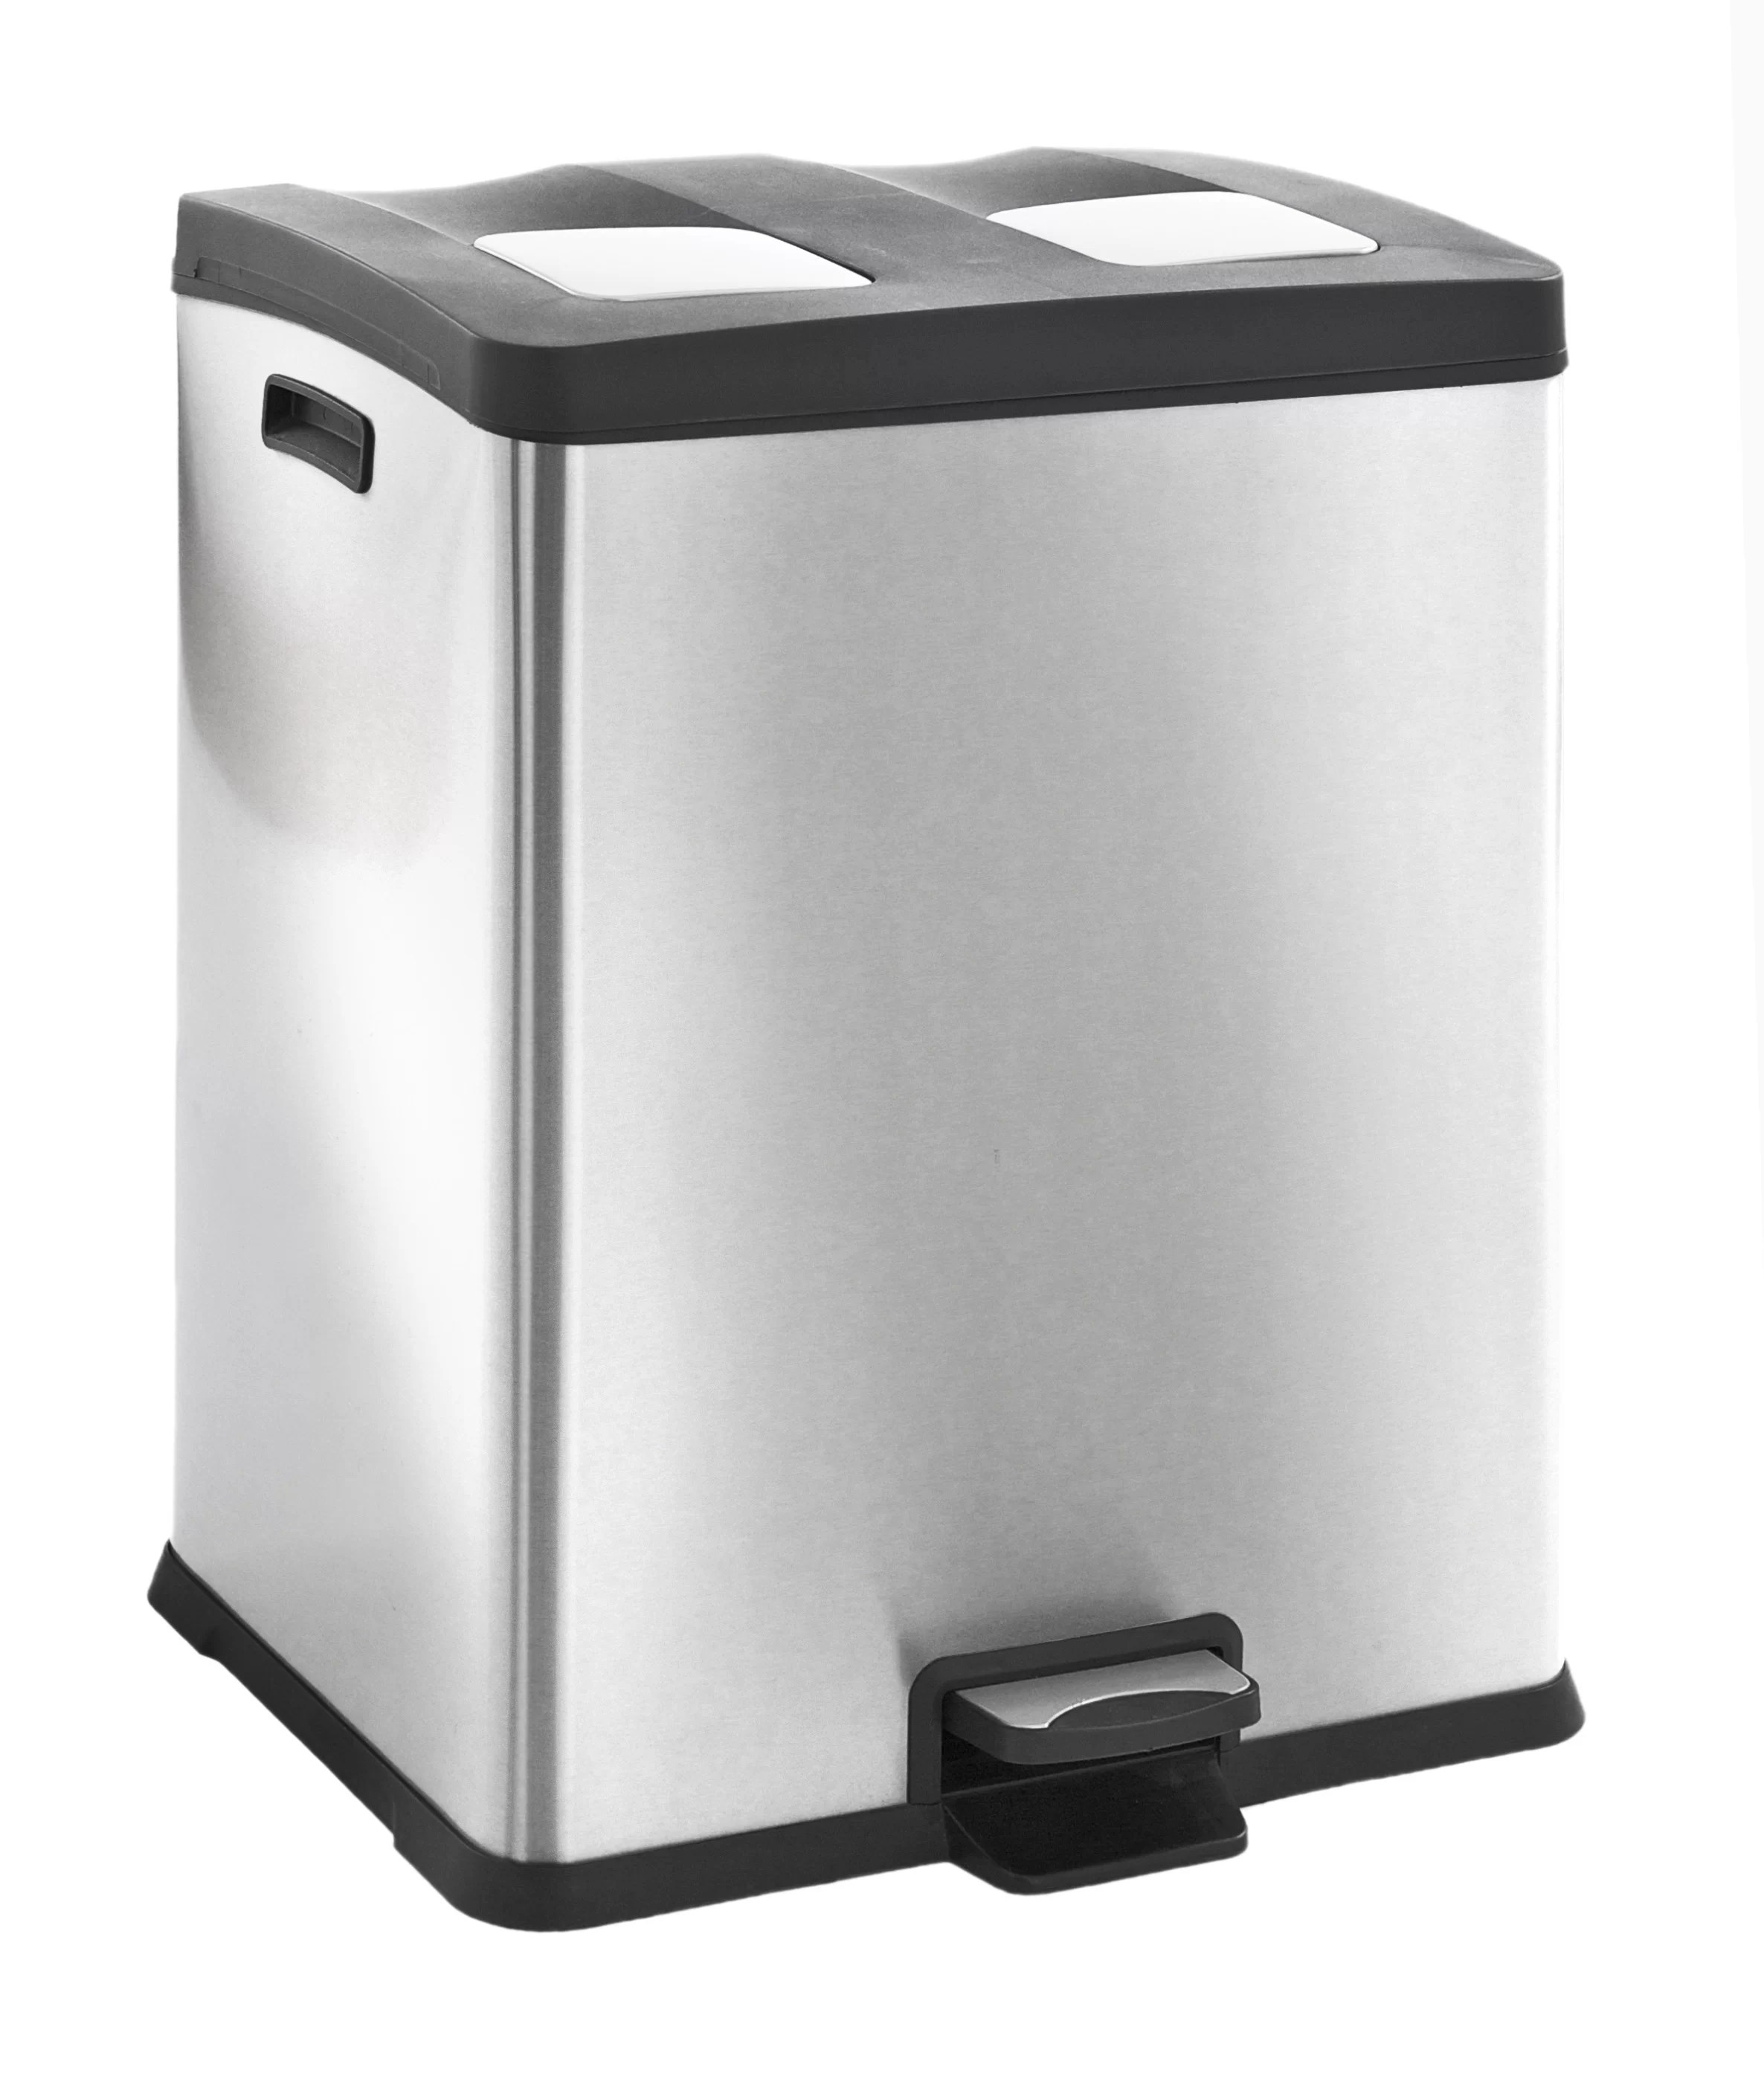 Tretmülleimer 30 L Rejoice Recycle 60l Step On Stainless Steel Bin